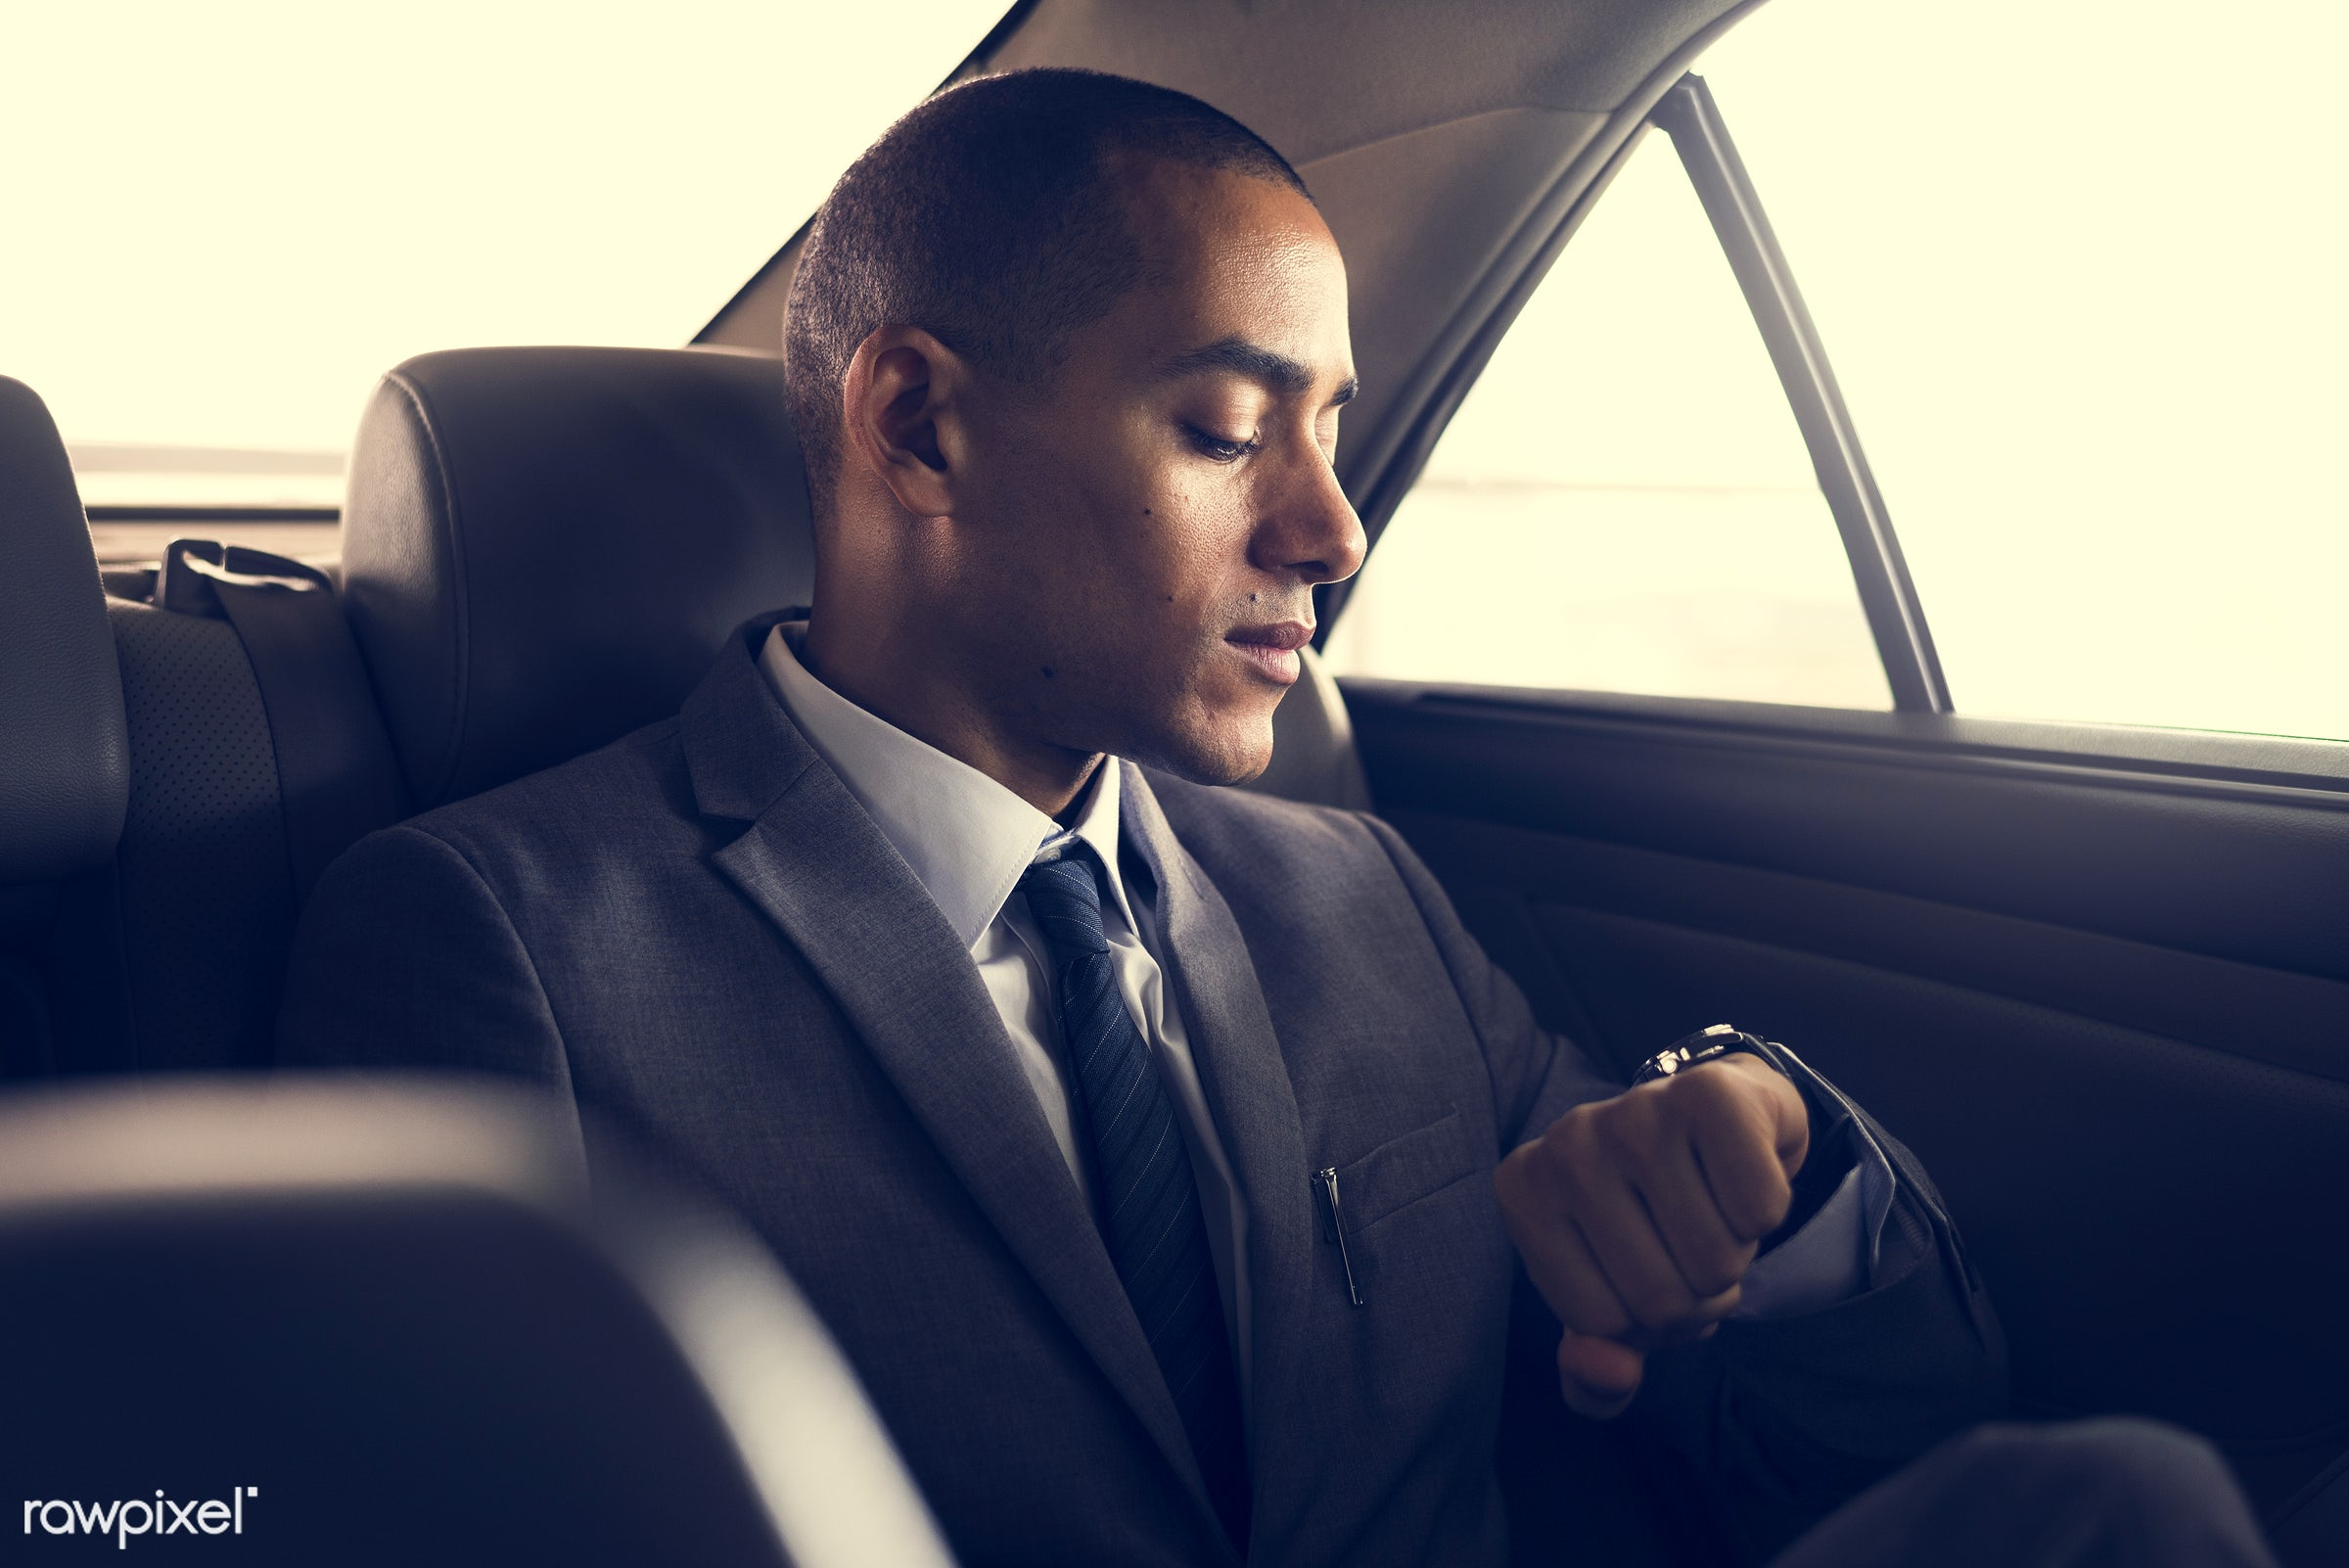 adult, back seat, business, businessman, businessmen, candid, car, corporate, device, digital device, employee, ethnicity,...